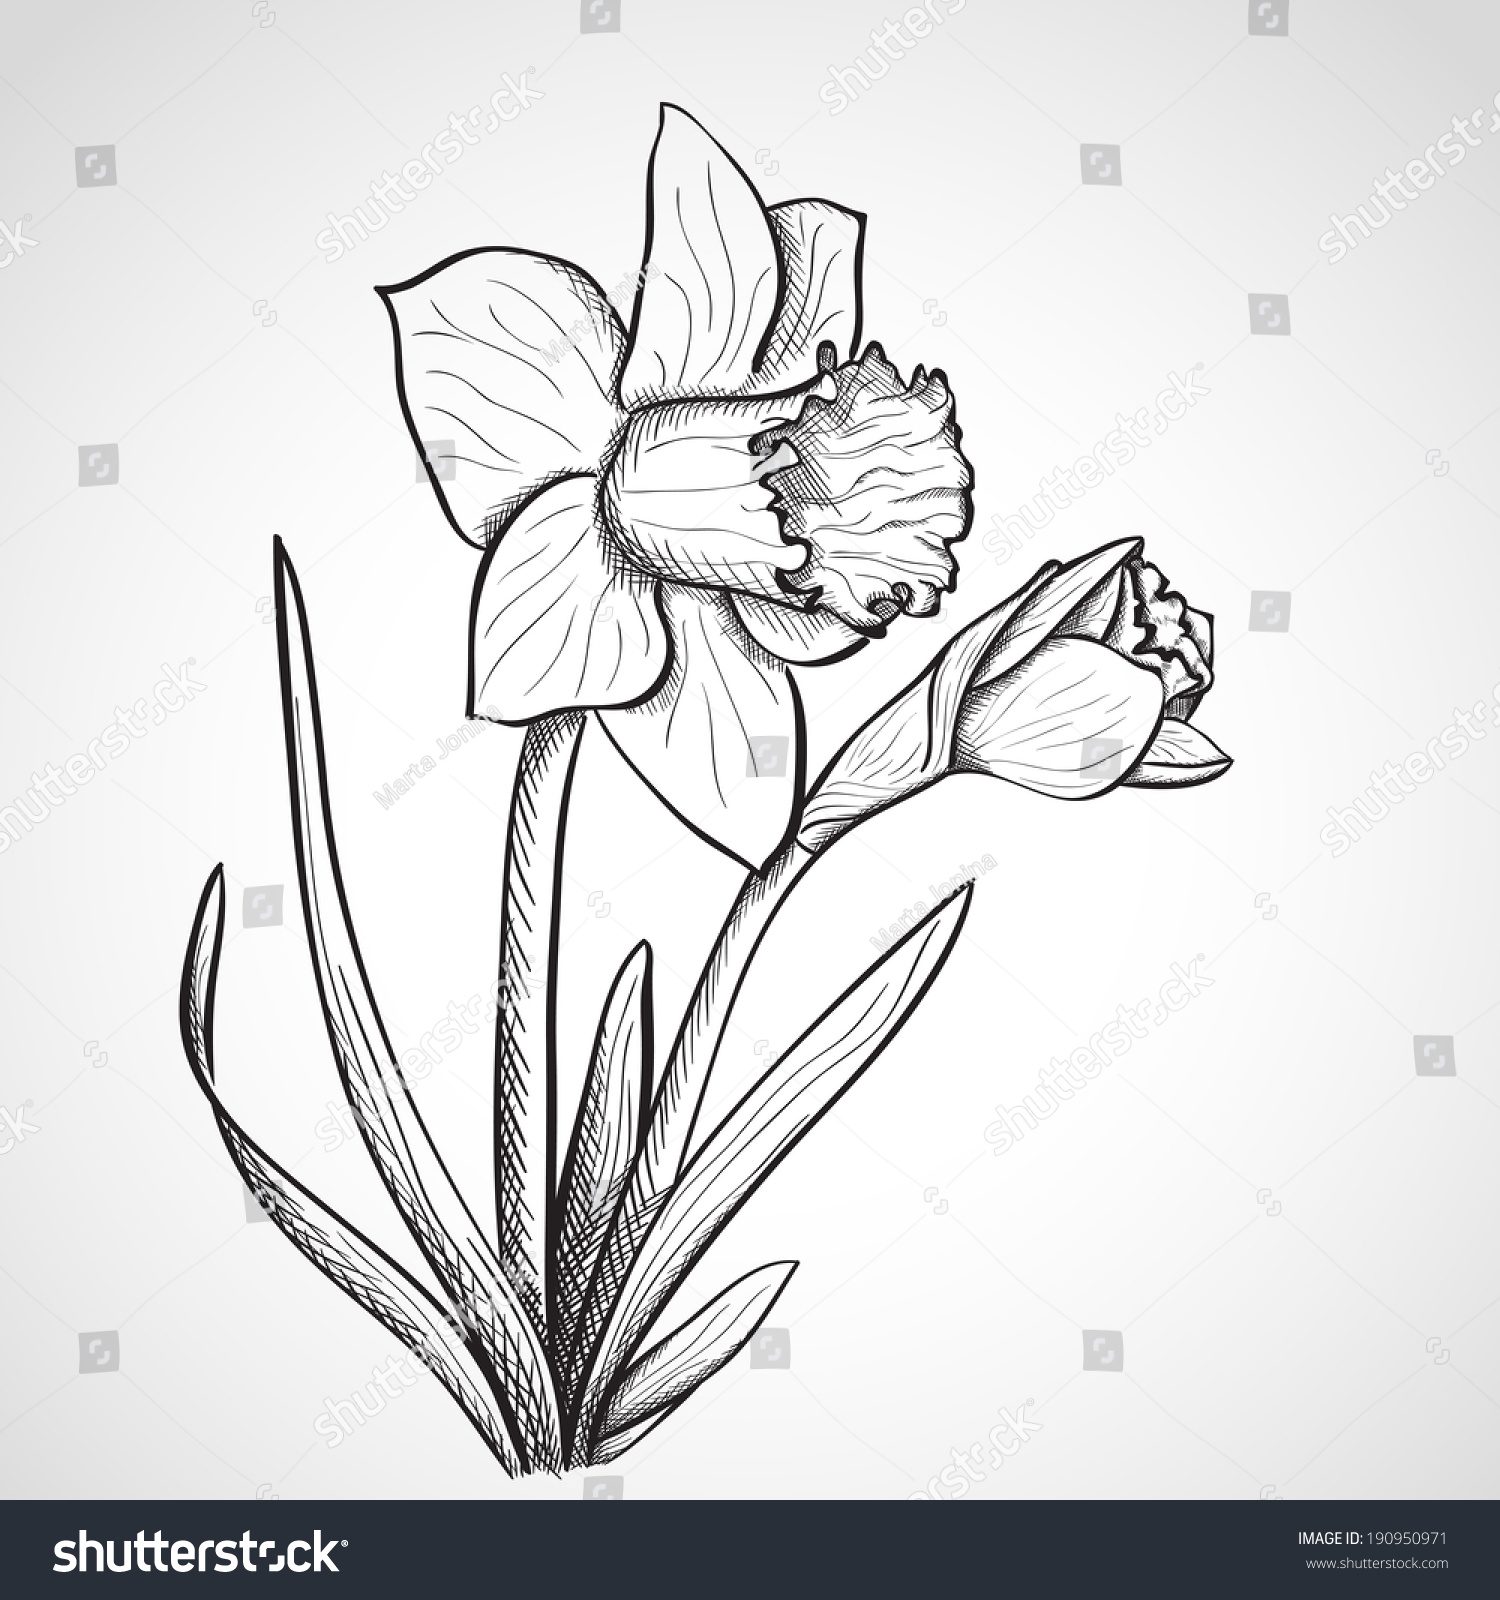 Sketch Daffodil Hand Drawn Ink Style Stock Vector 190950971 ...